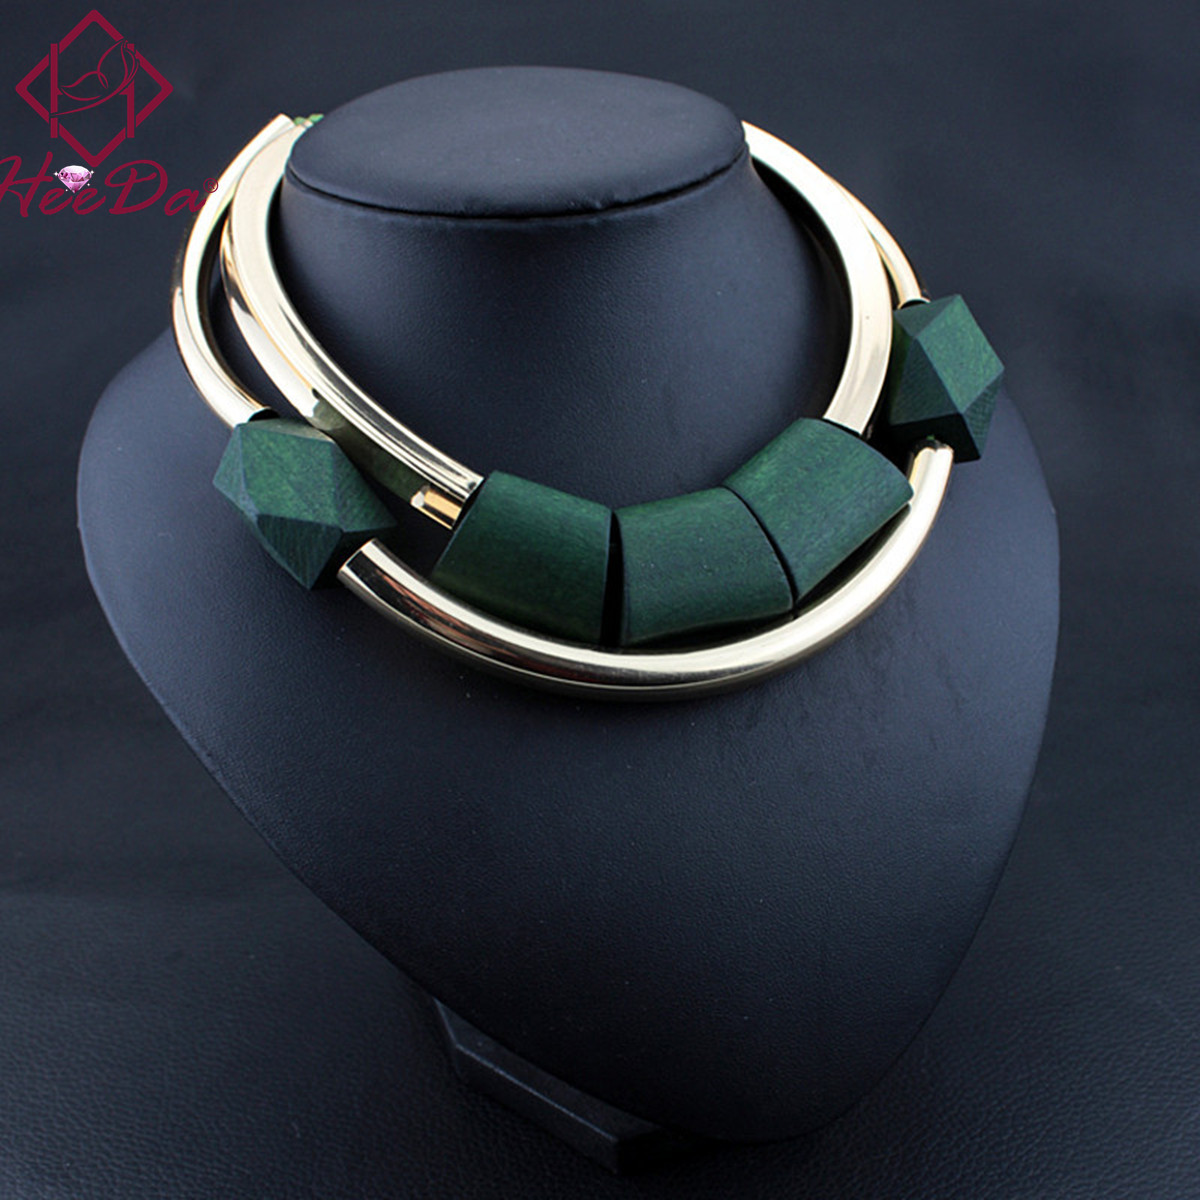 Vintage Wood Beads Pendant Initial Necklace For Women Fashion Green Black Choker Kpop Big Nme Bijoux Femme 2018 Mothers Day Gift